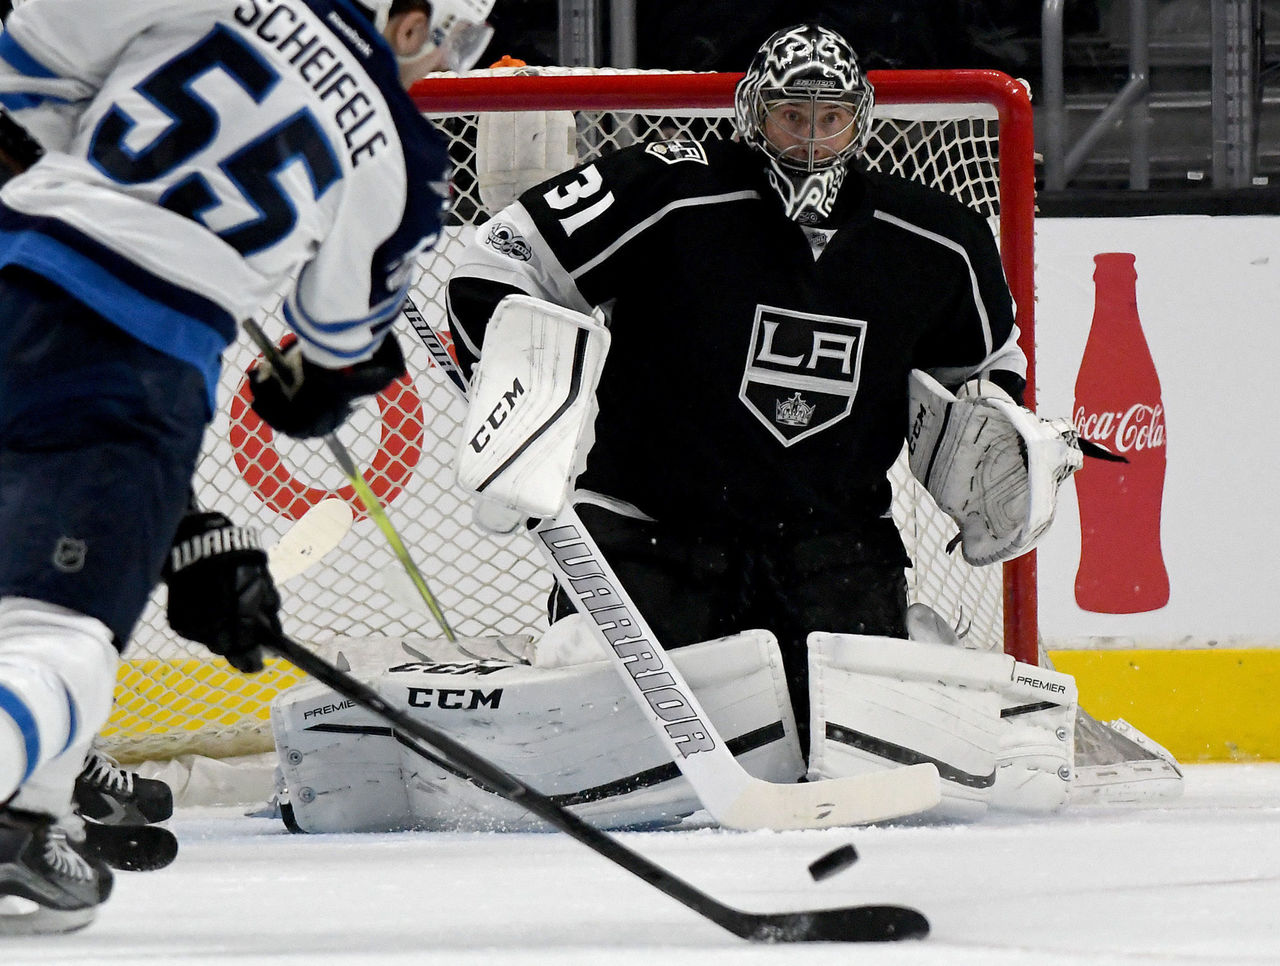 Cropped 2017 03 24t050210z 1464869559 nocid rtrmadp 3 nhl winnipeg jets at los angeles kings